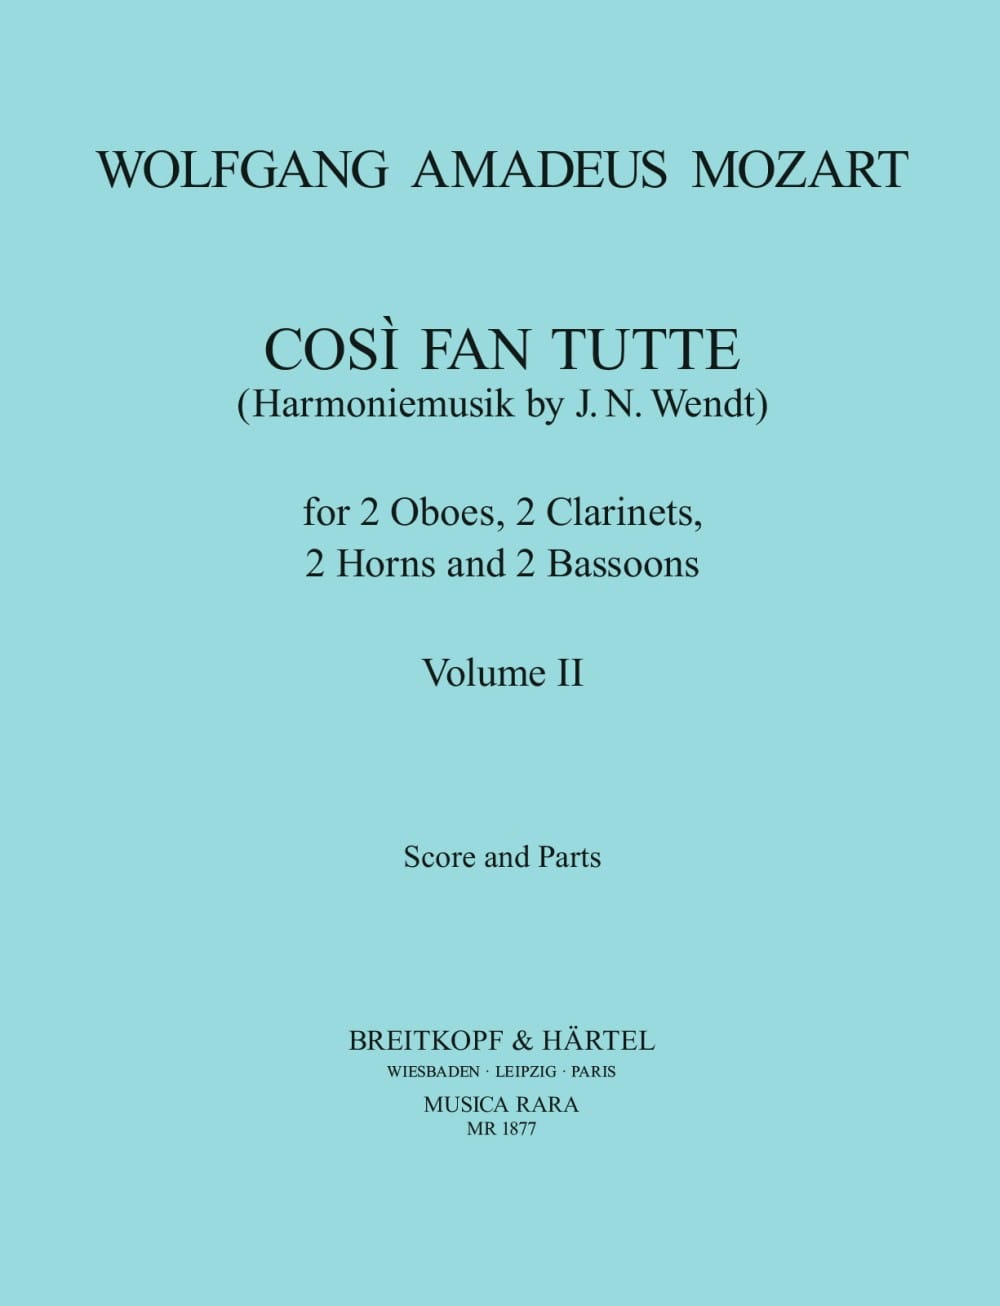 MOZART - Cosi Fan Tutte Volume 2 - Harmoniemusik - Score parts - Partition - di-arezzo.co.uk